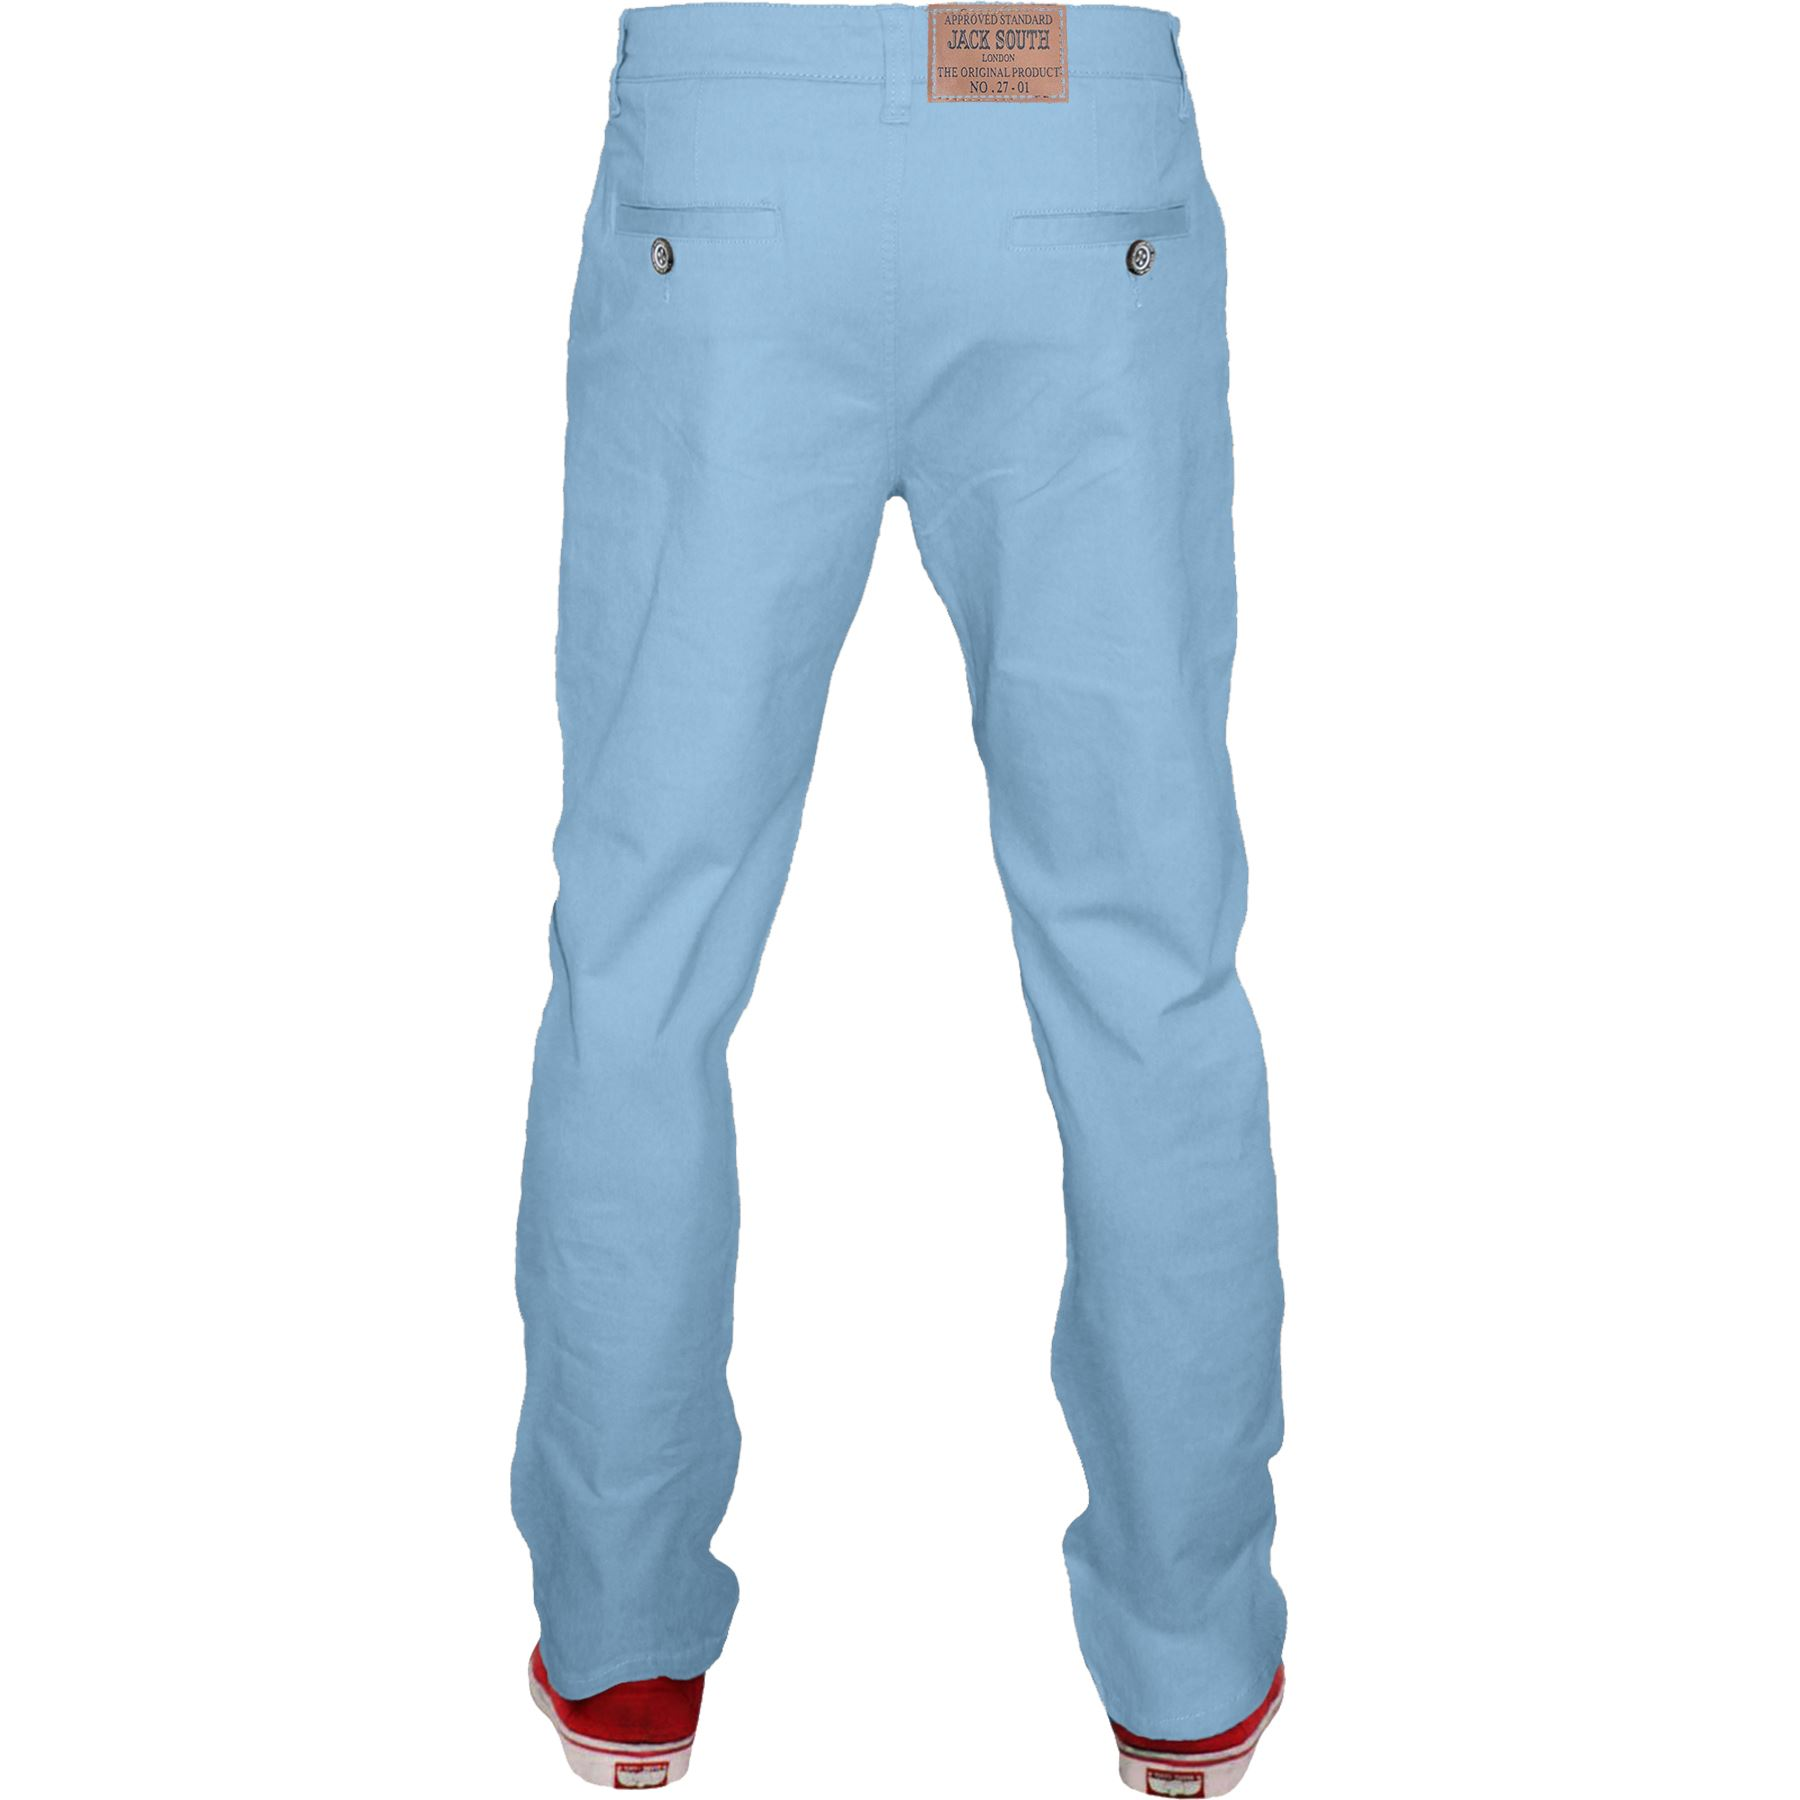 Mens-Chino-Classic-Regular-Fit-Trouser-Casual-Stretch-Spandex-Pants-Size-32-40 thumbnail 13